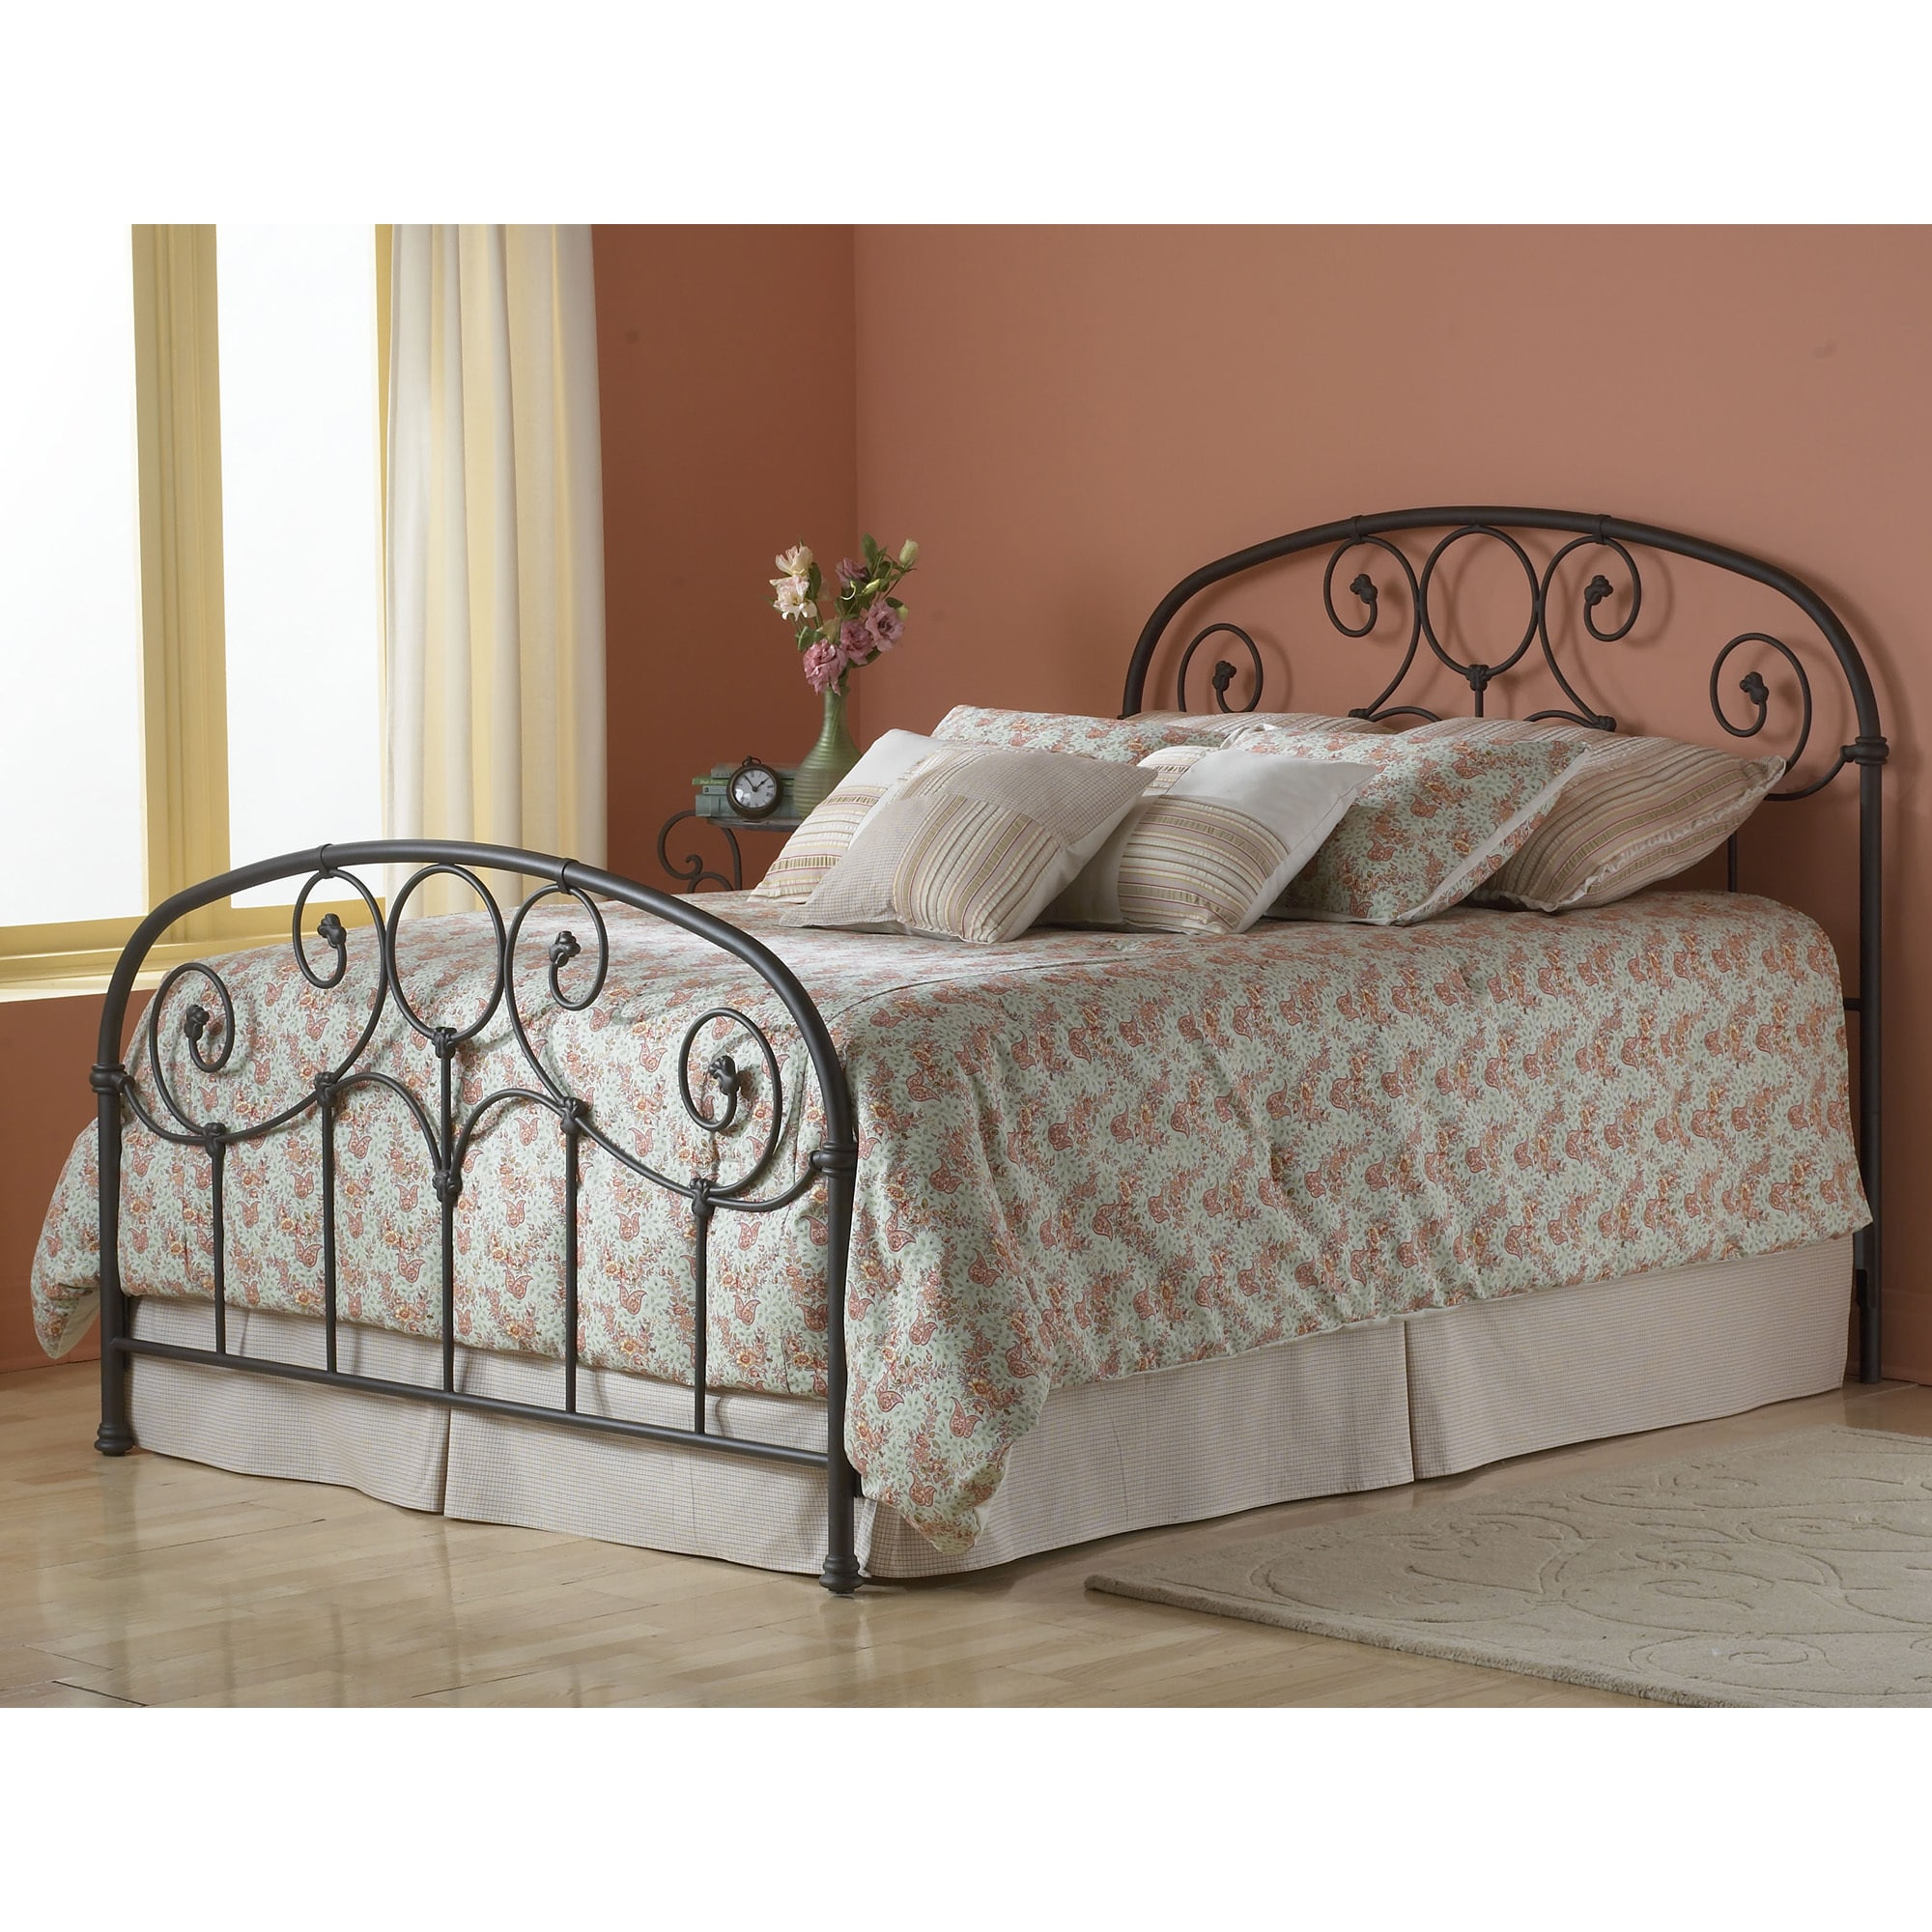 Fashion bed group grafton metal grey bed in rusty gold finish